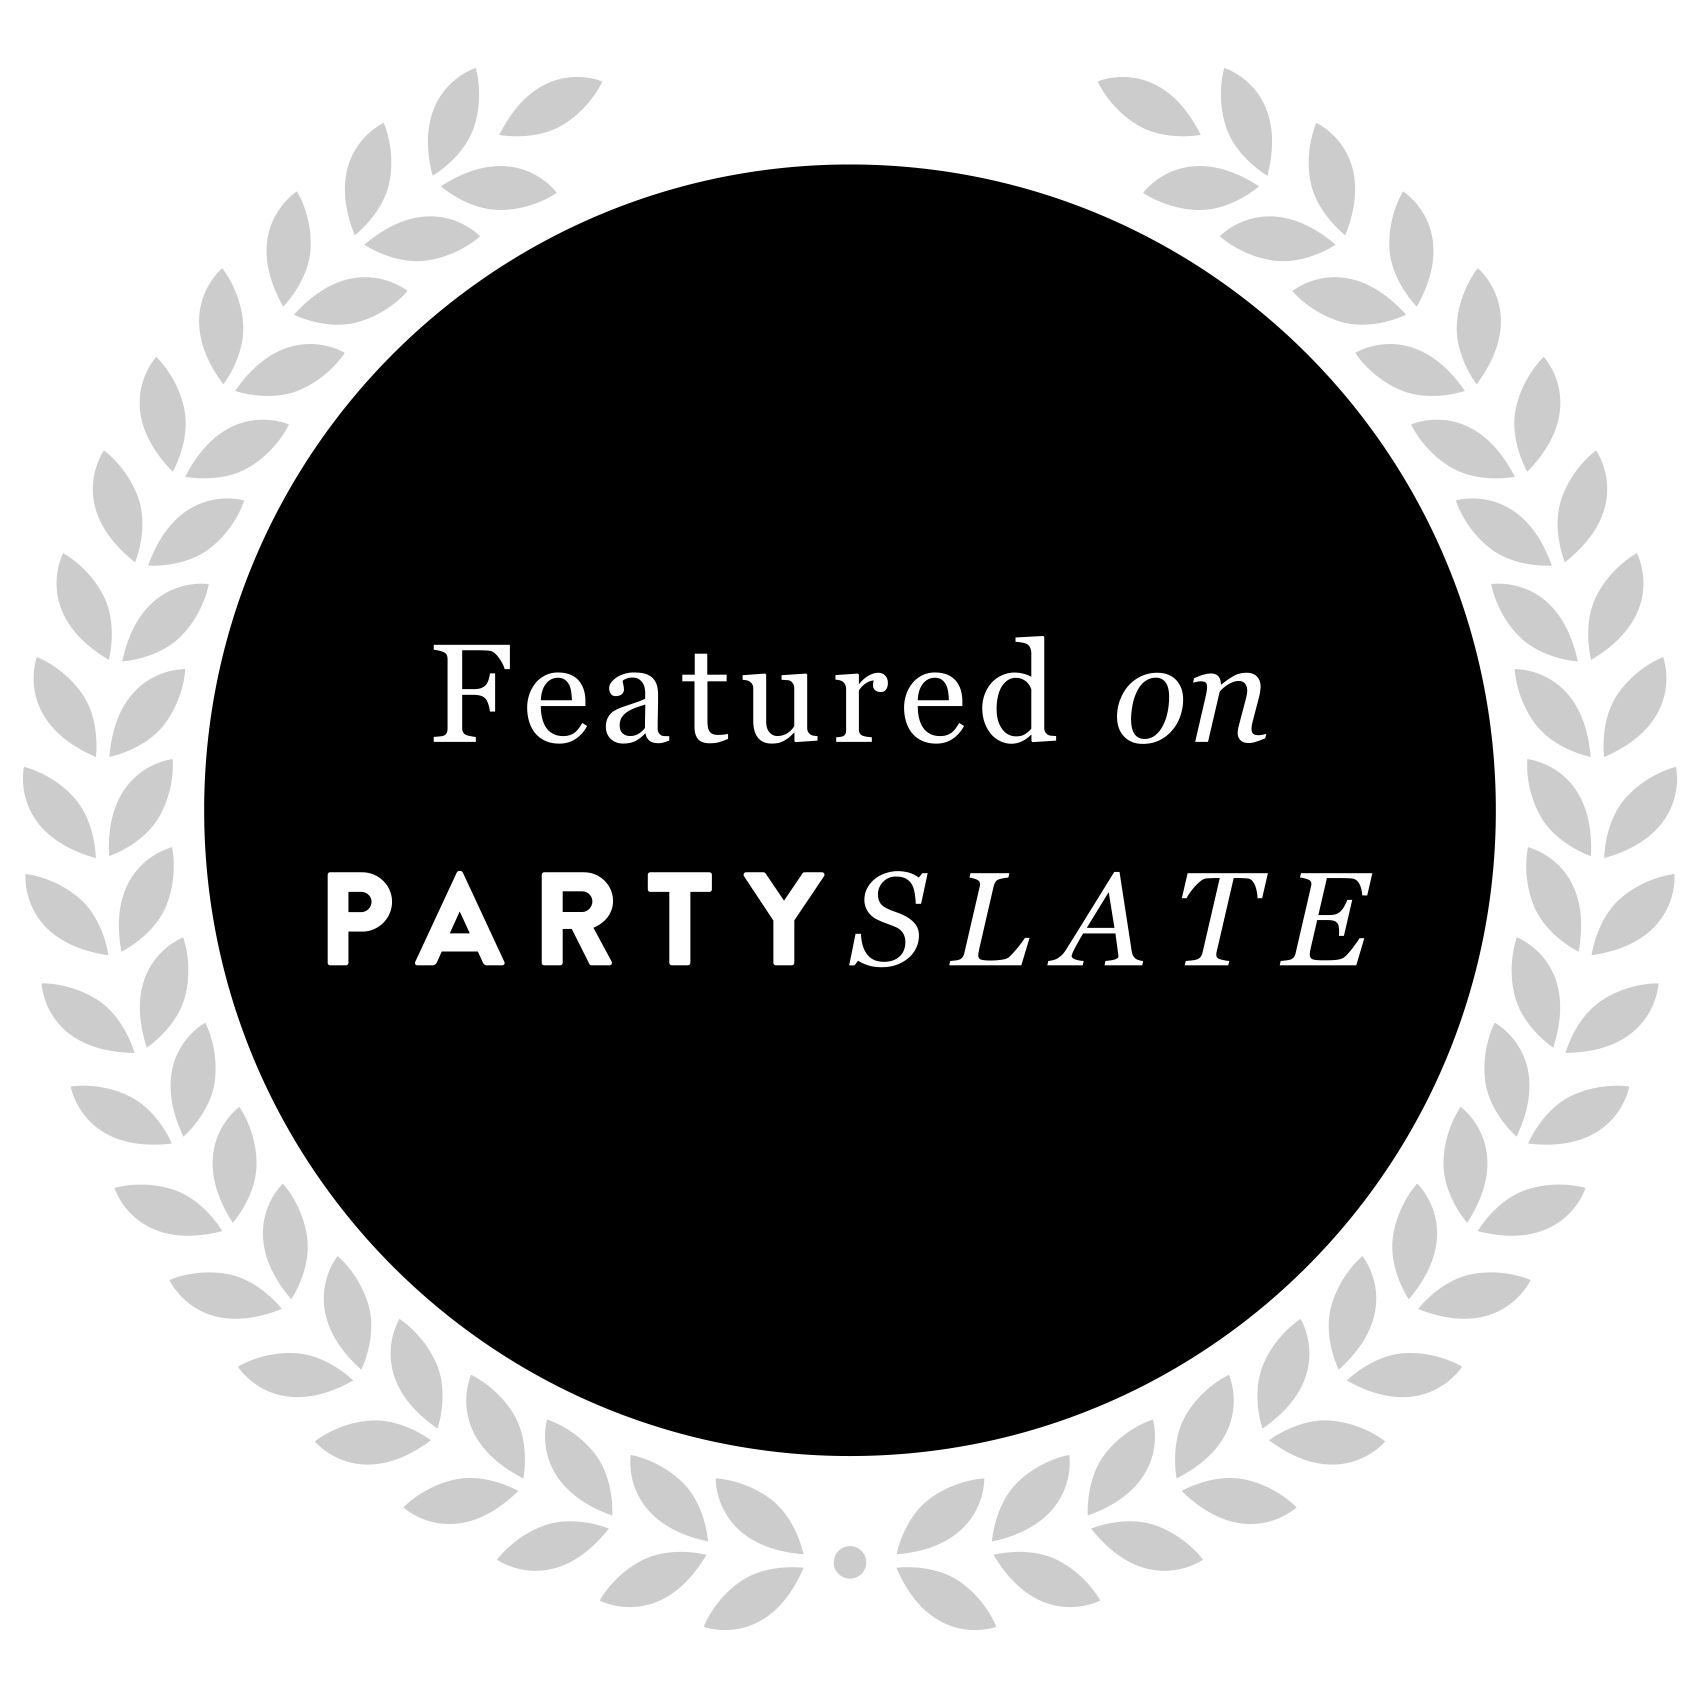 partyslate-featured-badge